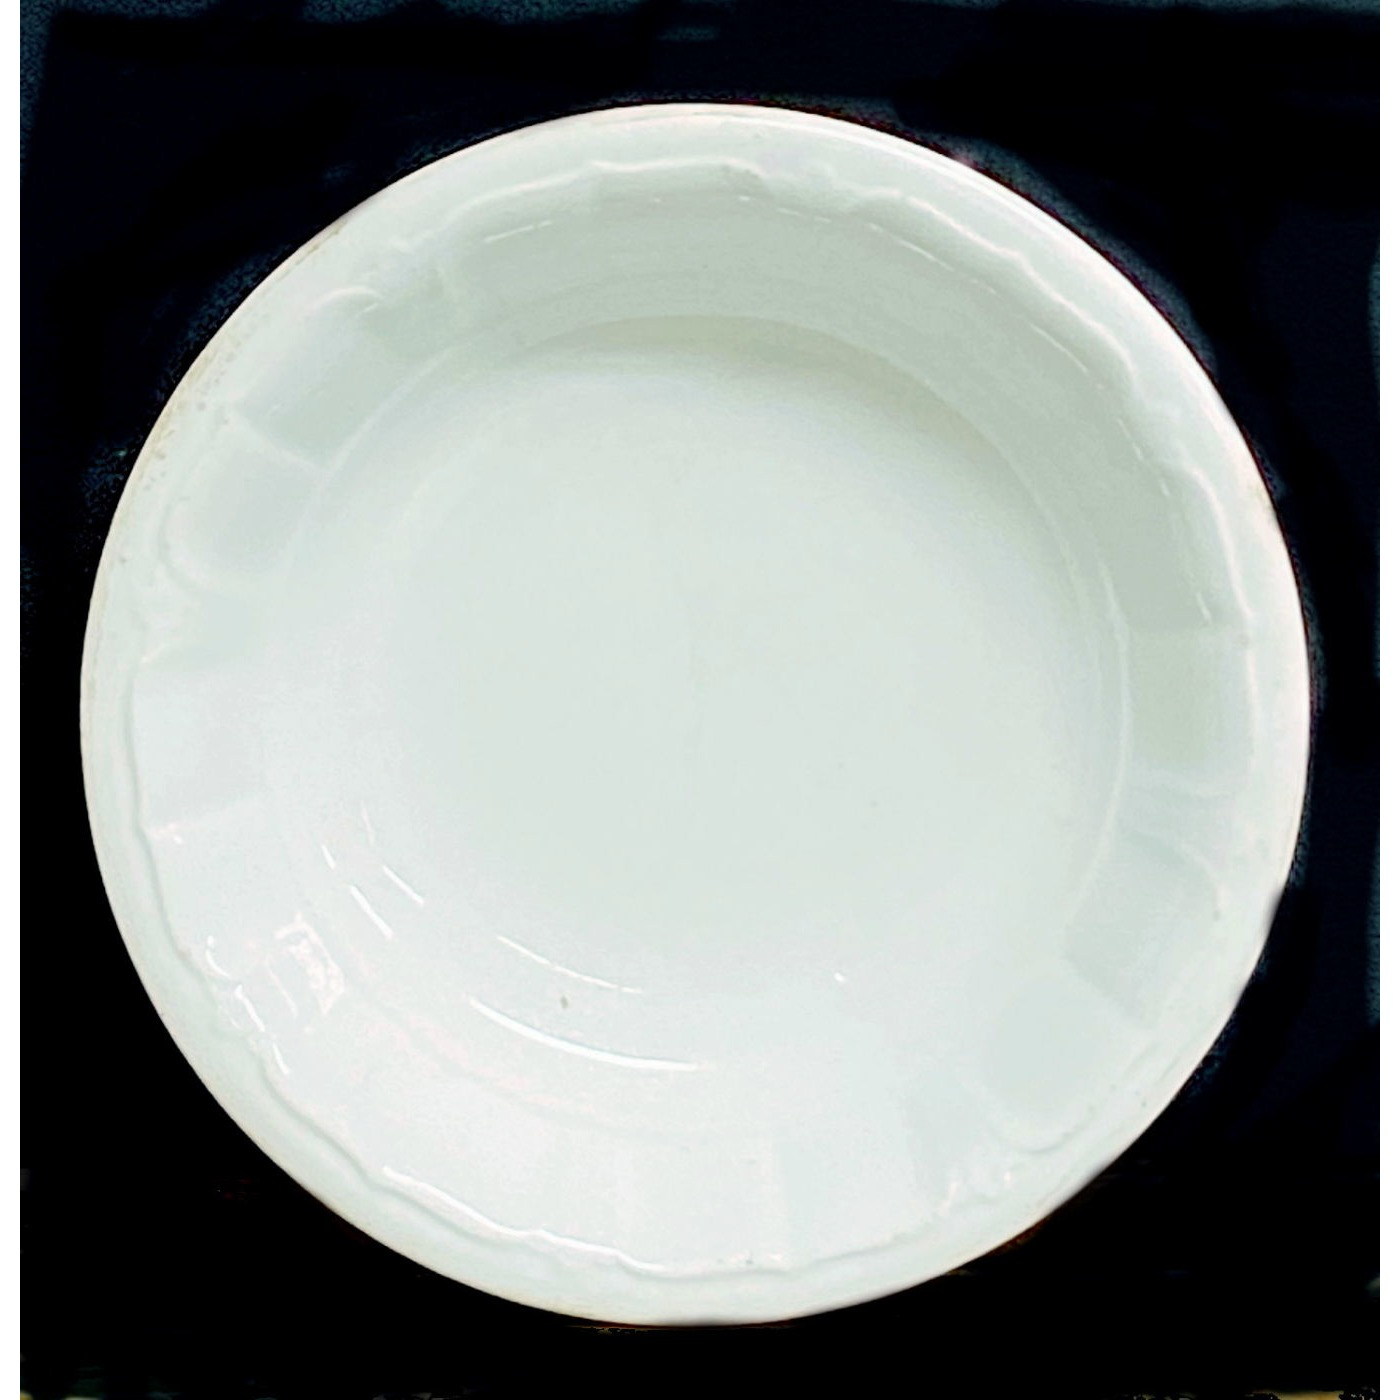 "7.5"" Diameter Sydenham Round Serving Bowl - Smallest in Set"